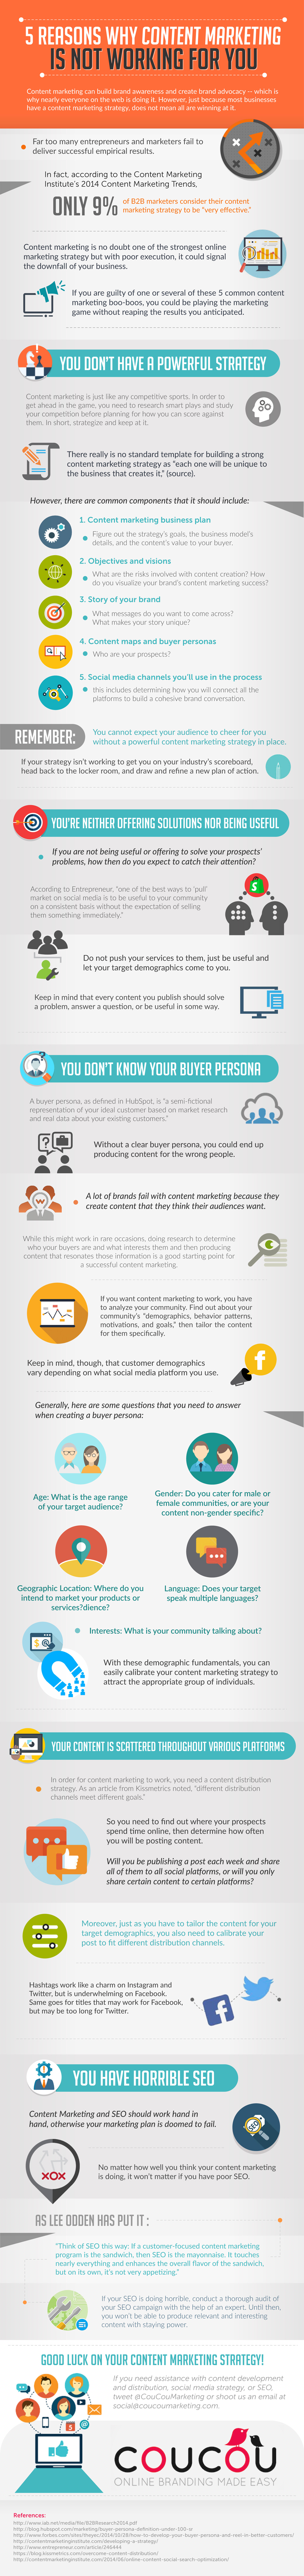 5 Reasons Why Content Marketing is Not Working For You - An Infographic from Coucou Marketing